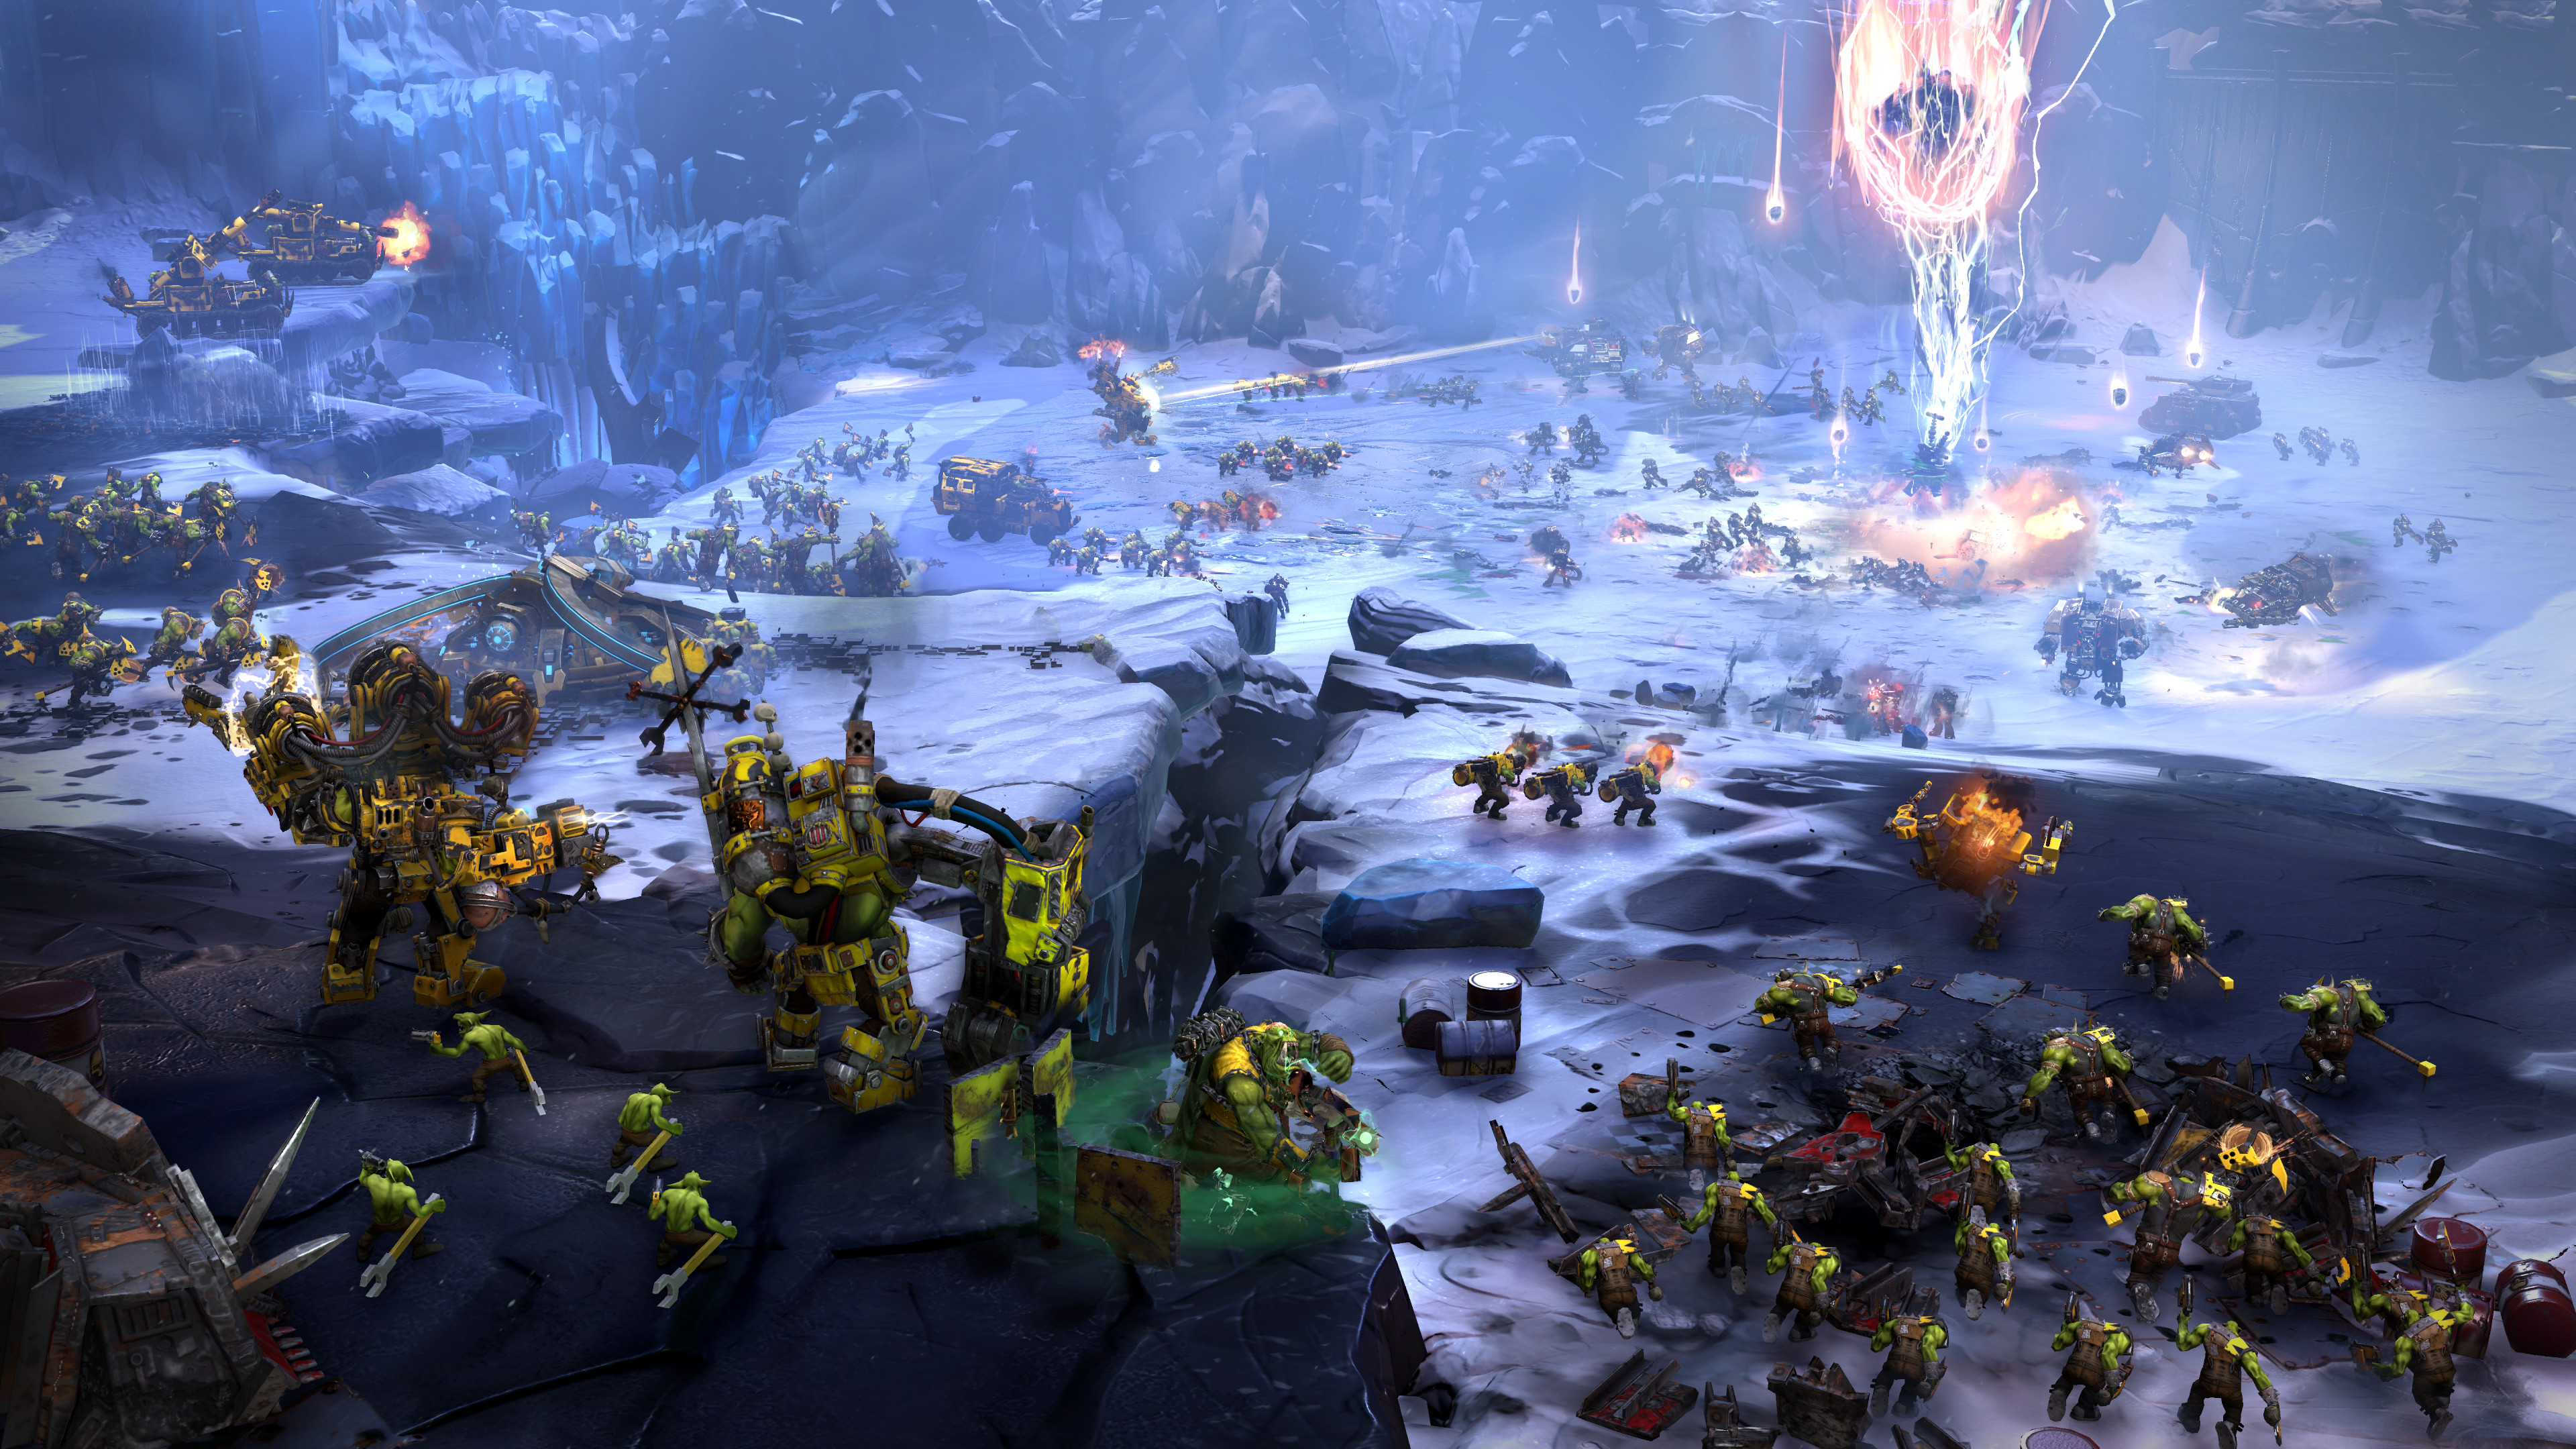 Dawn Of War 1920x1080: Warhammer 40,000: Dawn Of War III